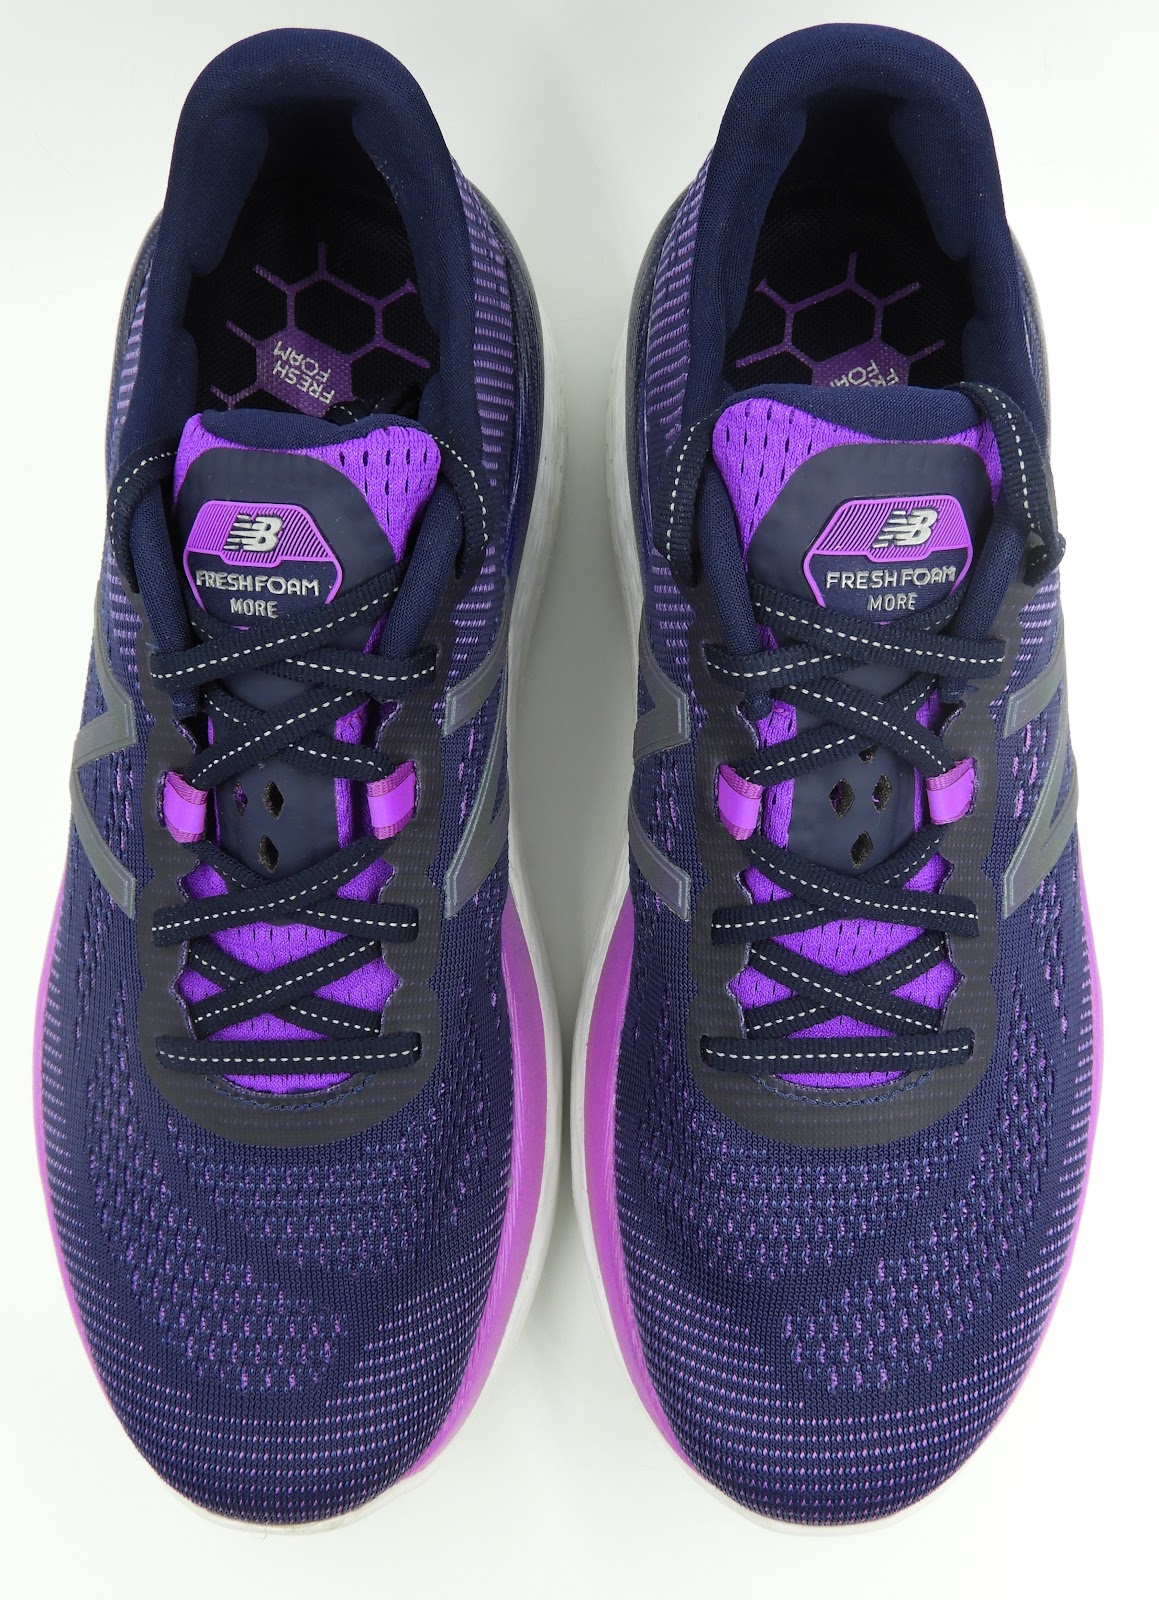 Road Trail Run: New Balance Fresh Foam More Review: Much More of